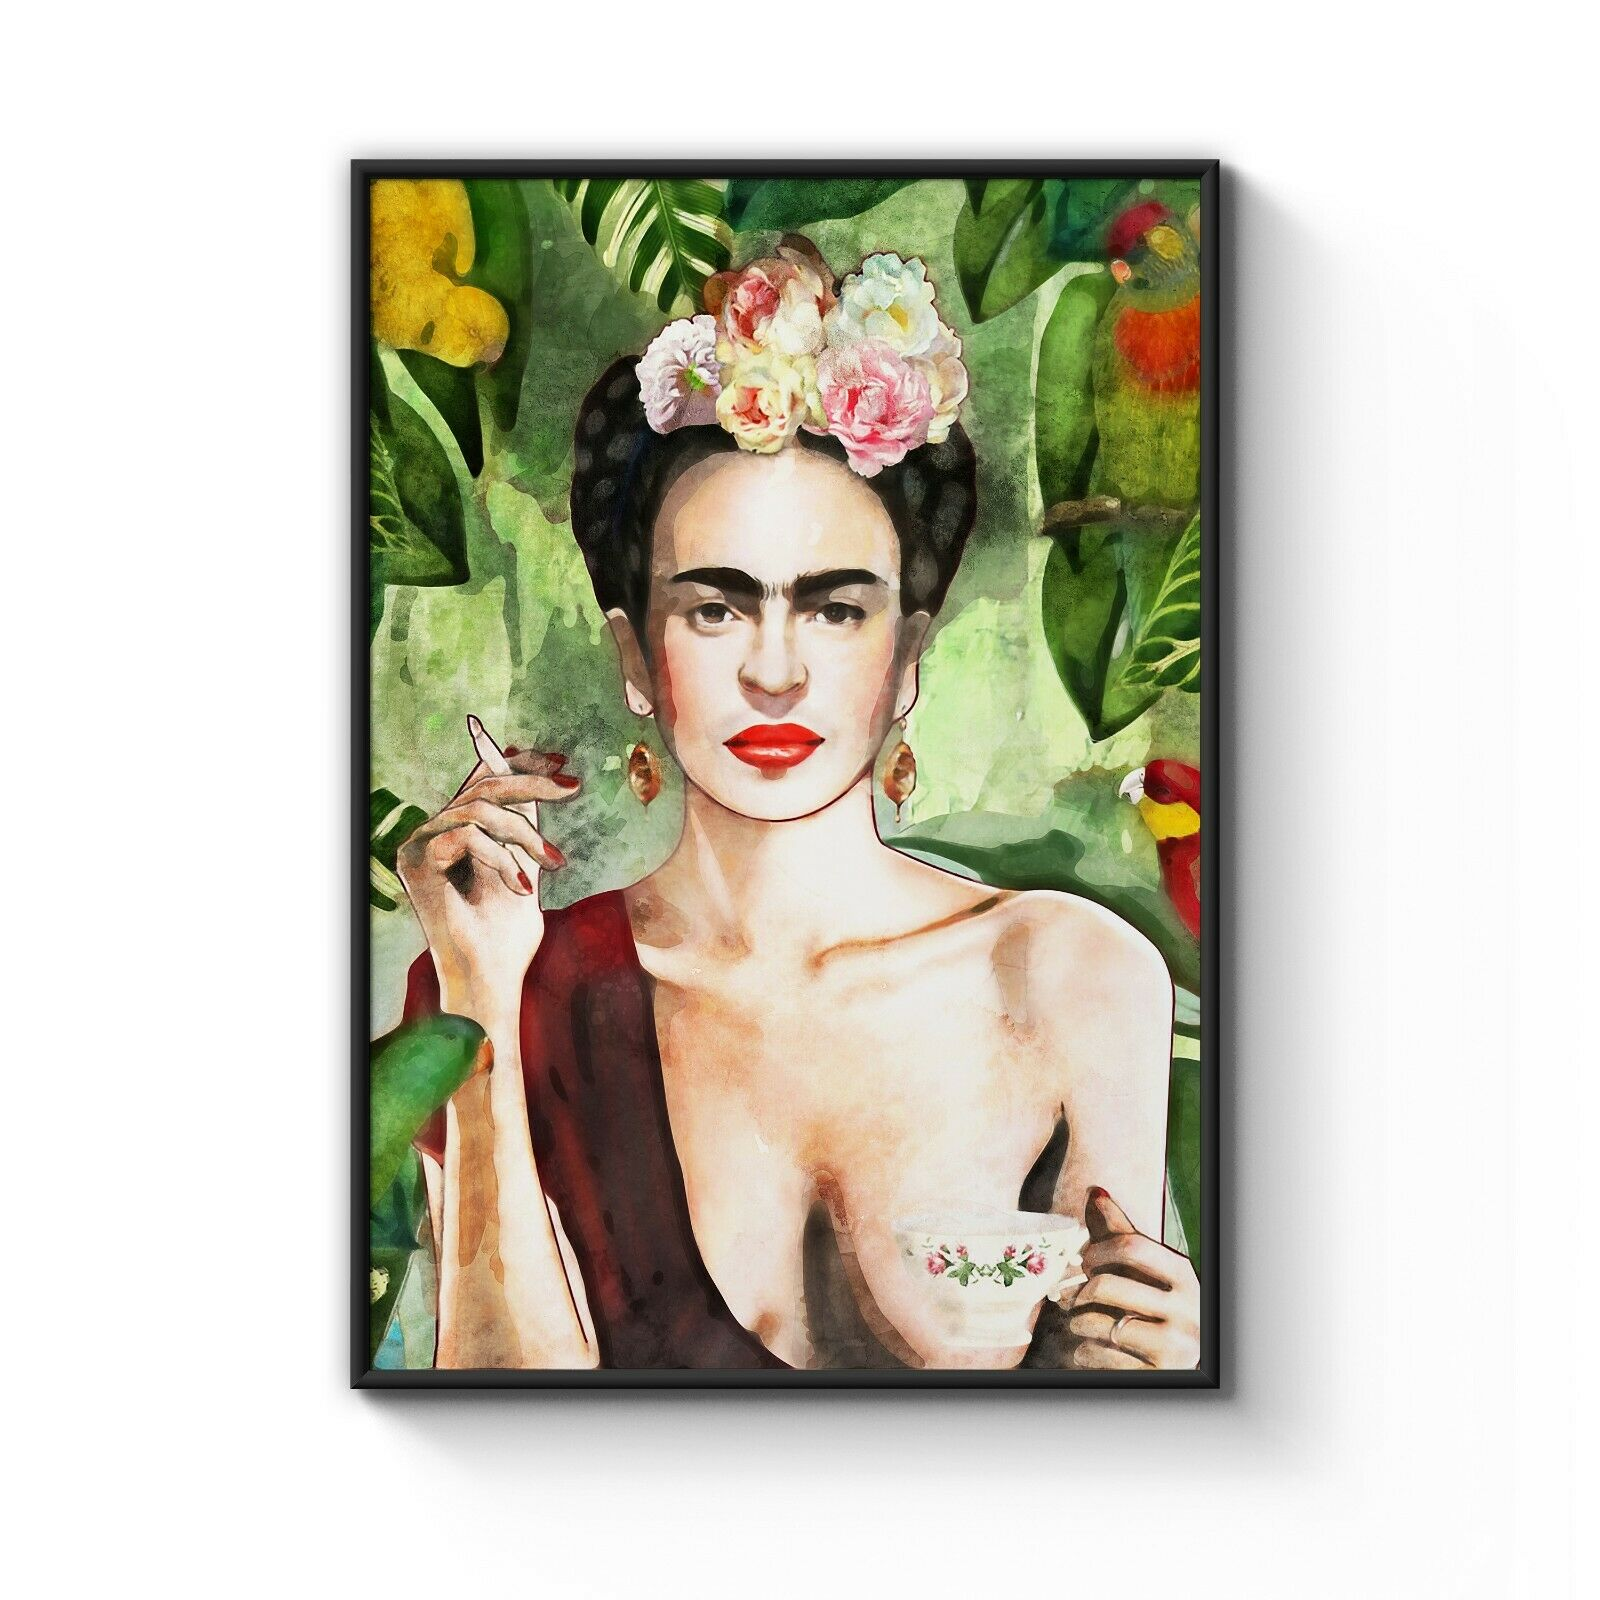 Frida Kahlo Con Amigos Unique Original Art Poster Print - A4 A3 A2 A1 A0 Framed